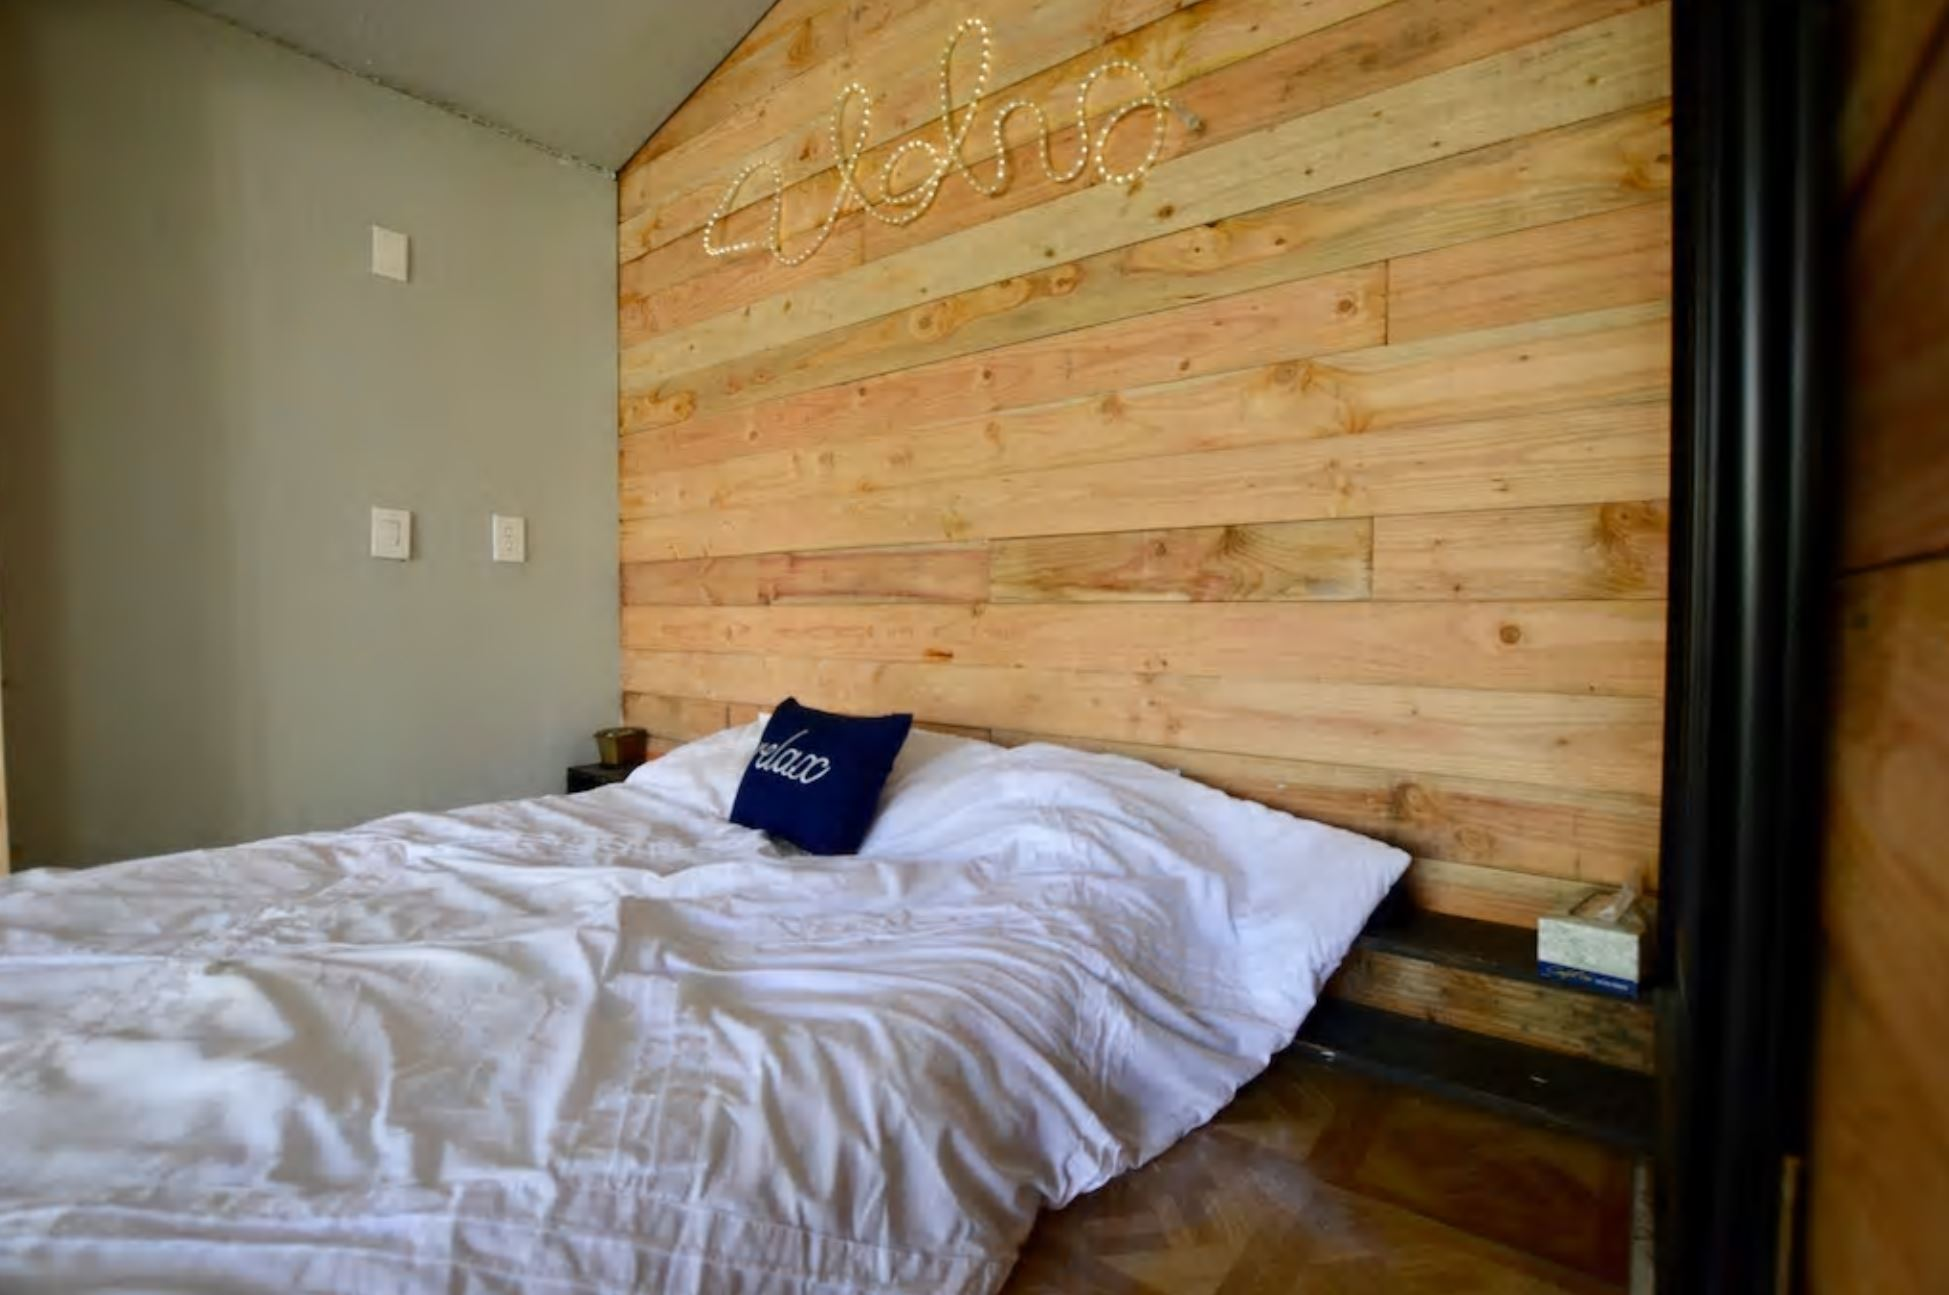 8. Picturesque Tree House, Couple's Getaway, Mountain View, entire home, 2 guests: Built by a new HGTV show crew this modern home is secluded in the jungle. MORE INFO